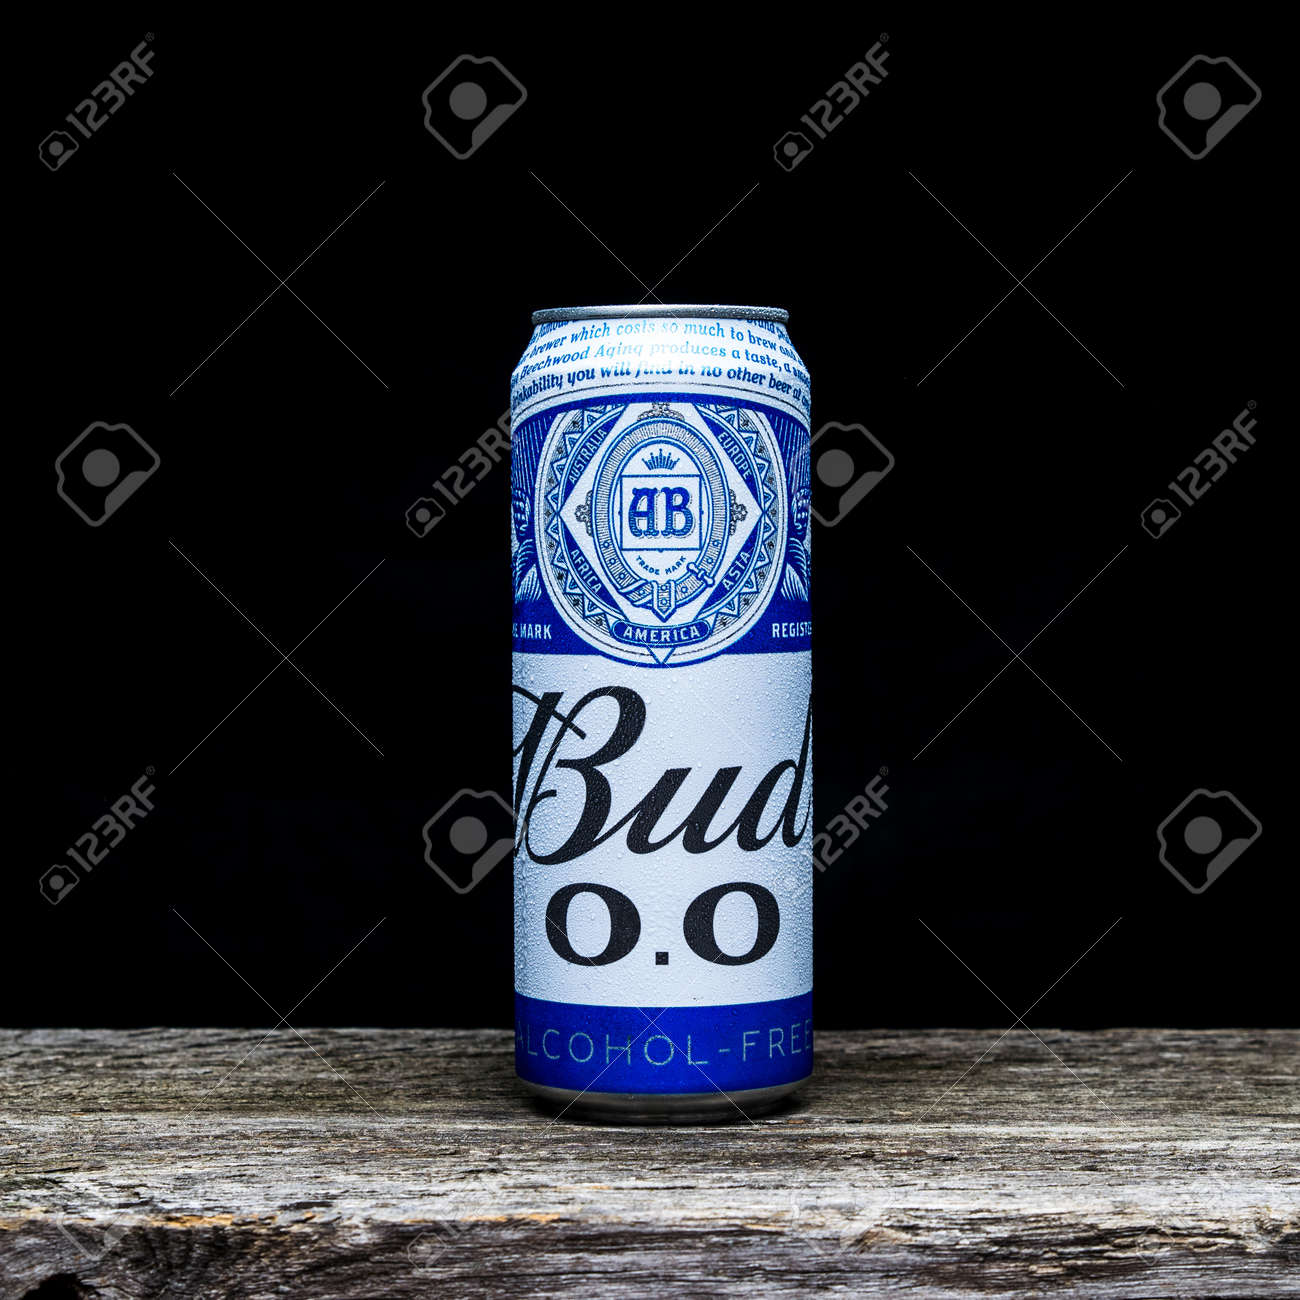 """Russia, Moscow, July 13, 2020: Bottle of nonalcoholic """"Bud"""" beer on a wooden table and dark background - 151526588"""